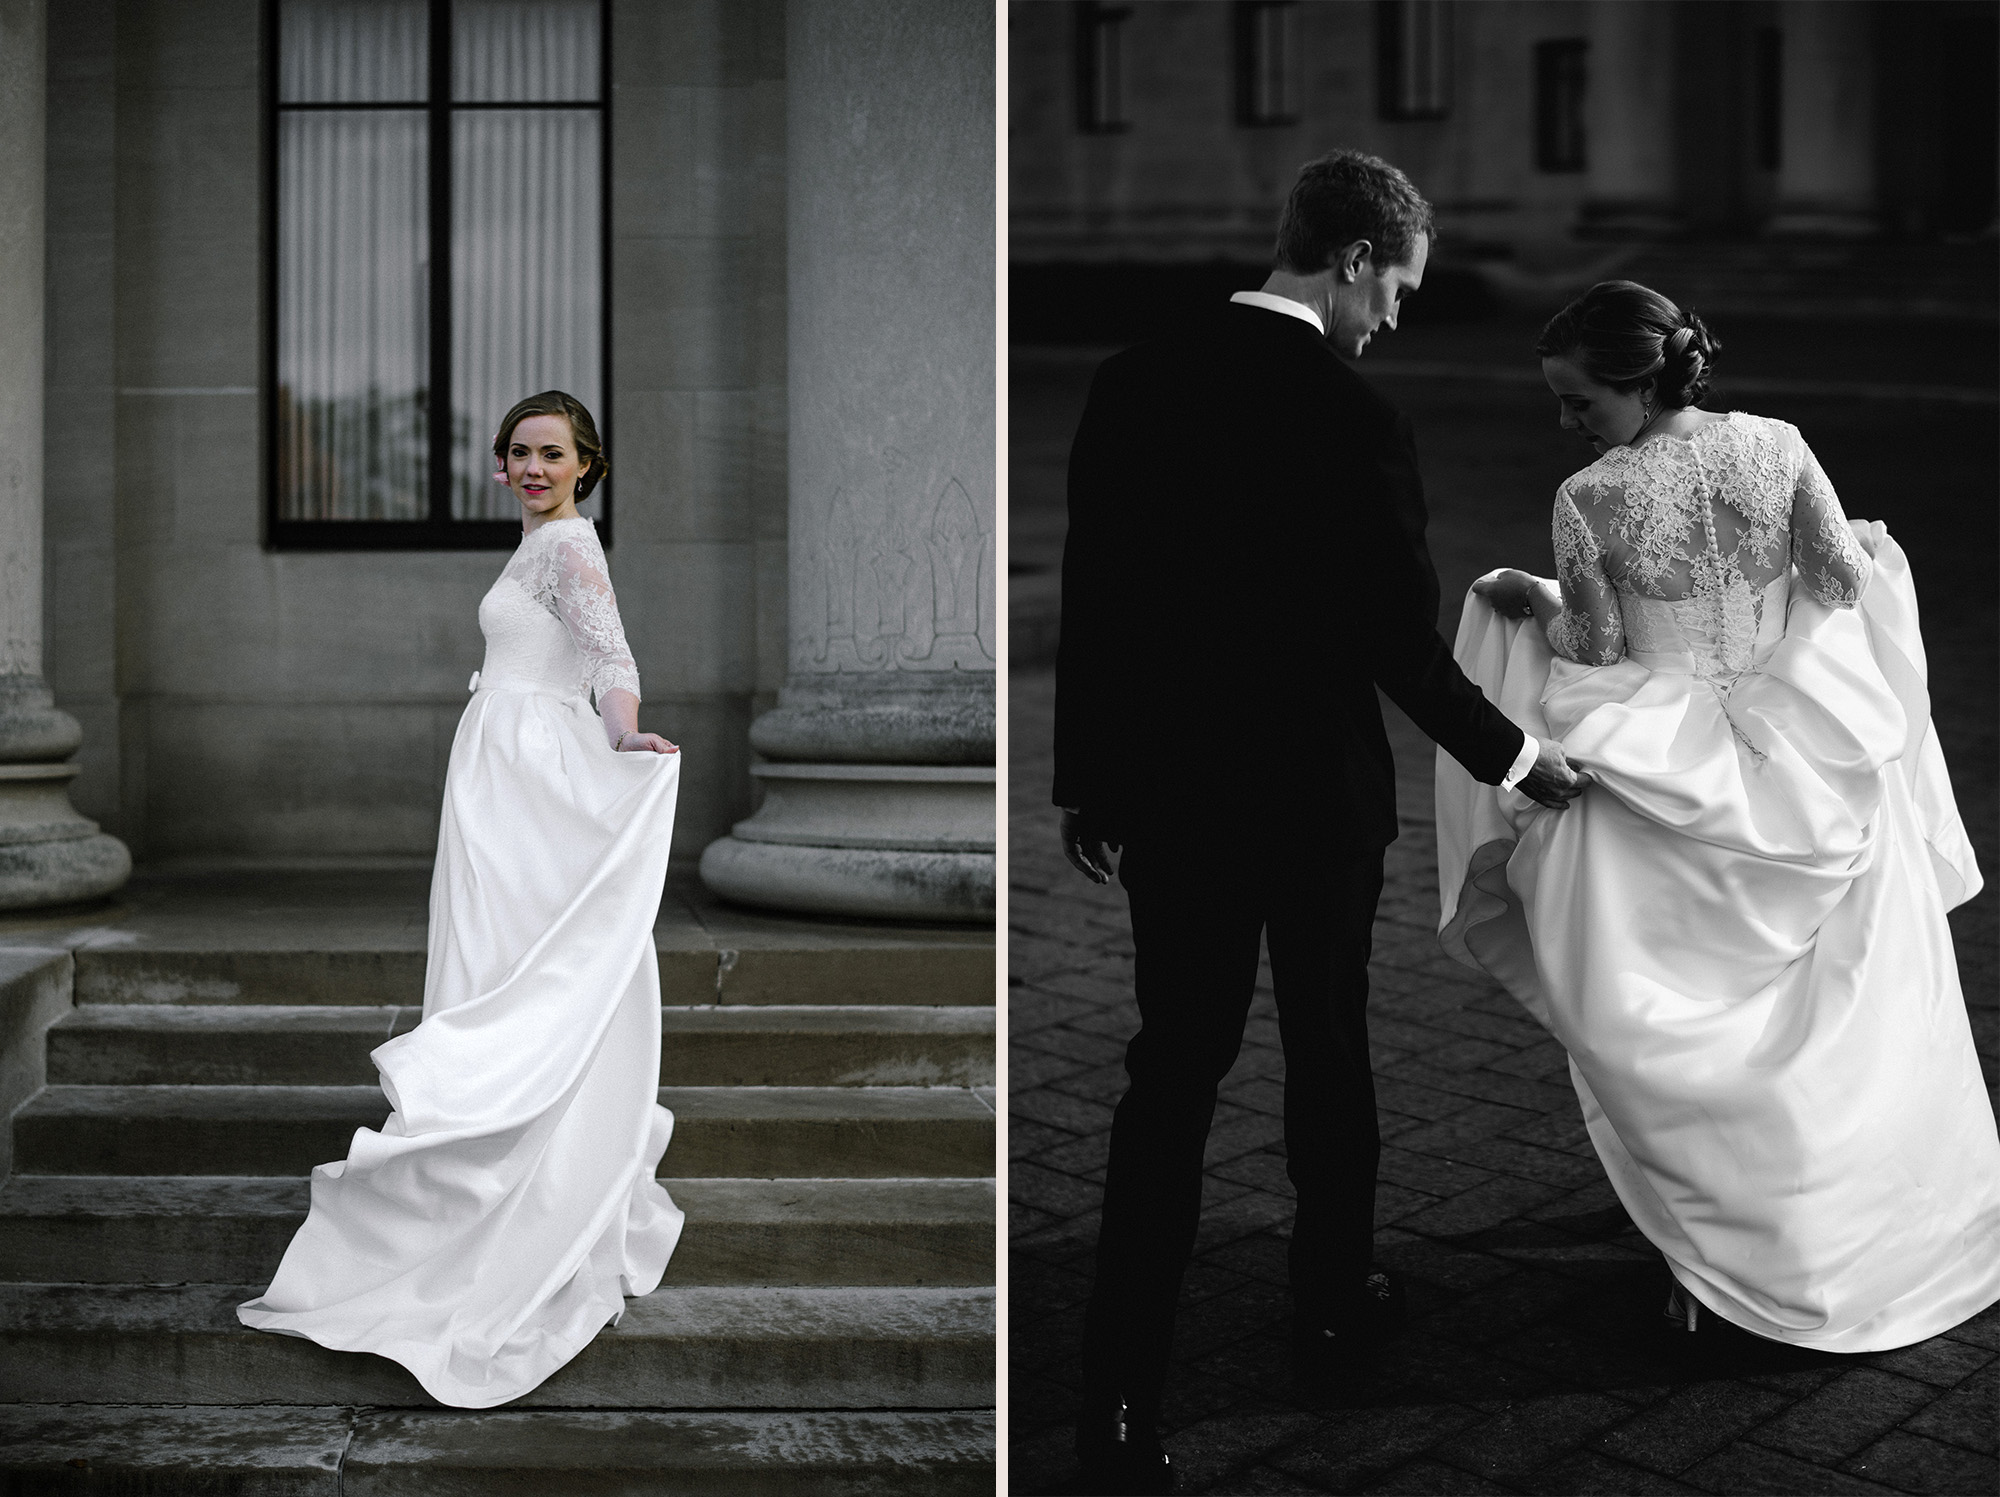 Kansas City Nelson-Atkins Museum Wedding Portraits Photography